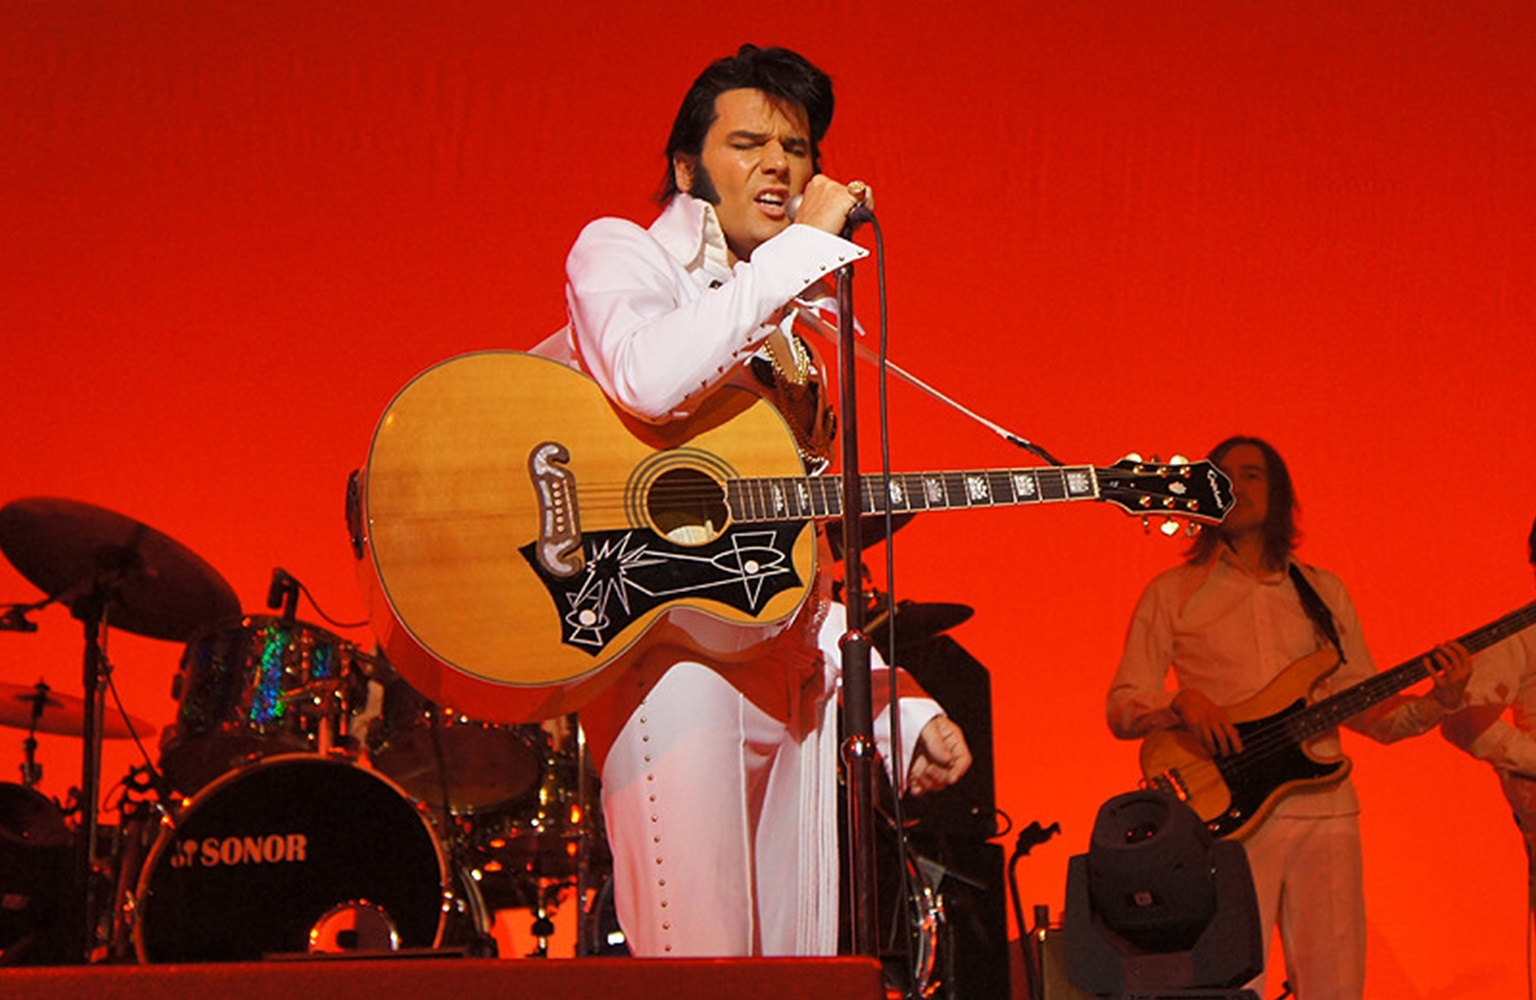 The wonder of The World Famous Elvis Show…